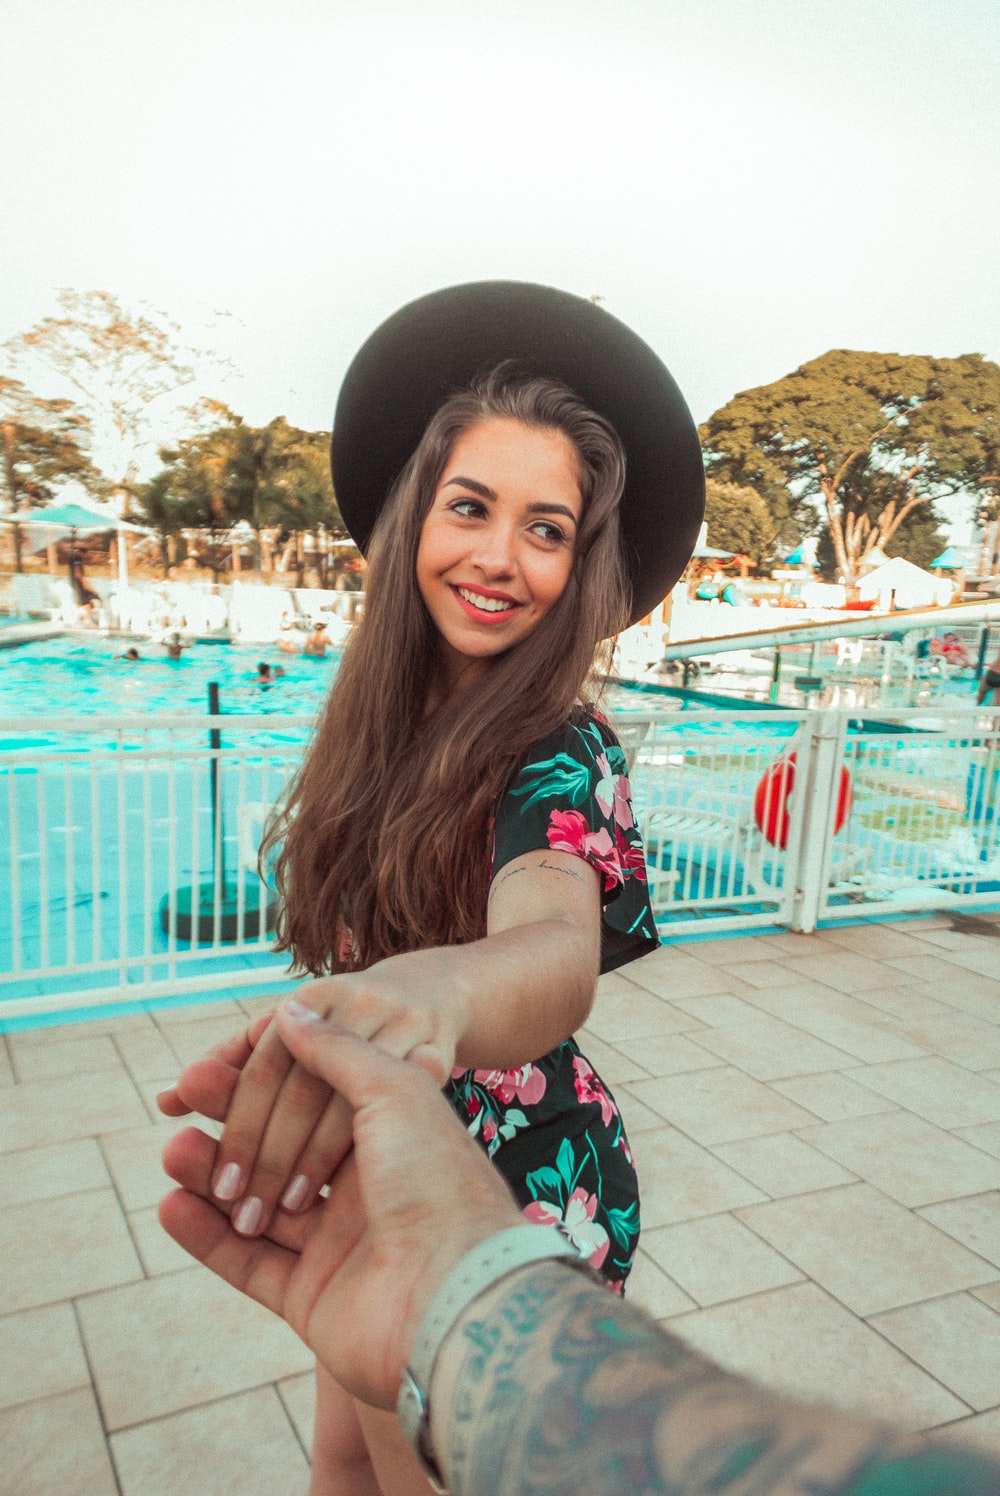 woman standing and smiling while holding hands of another person near swimming pool